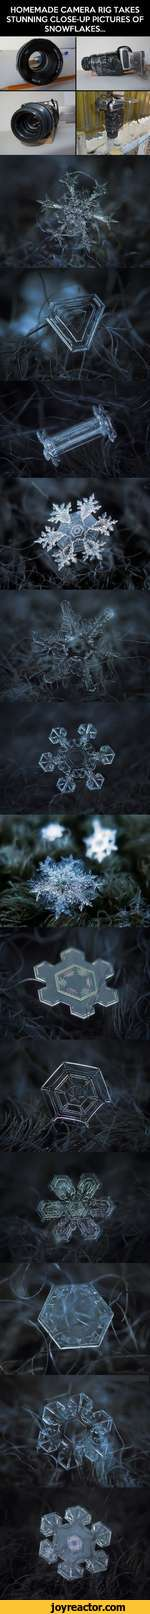 HOMEMADE CAMERA RIG TAKES STUNNING CLOSE-UP PICTURES OF SNOWFLAKES...